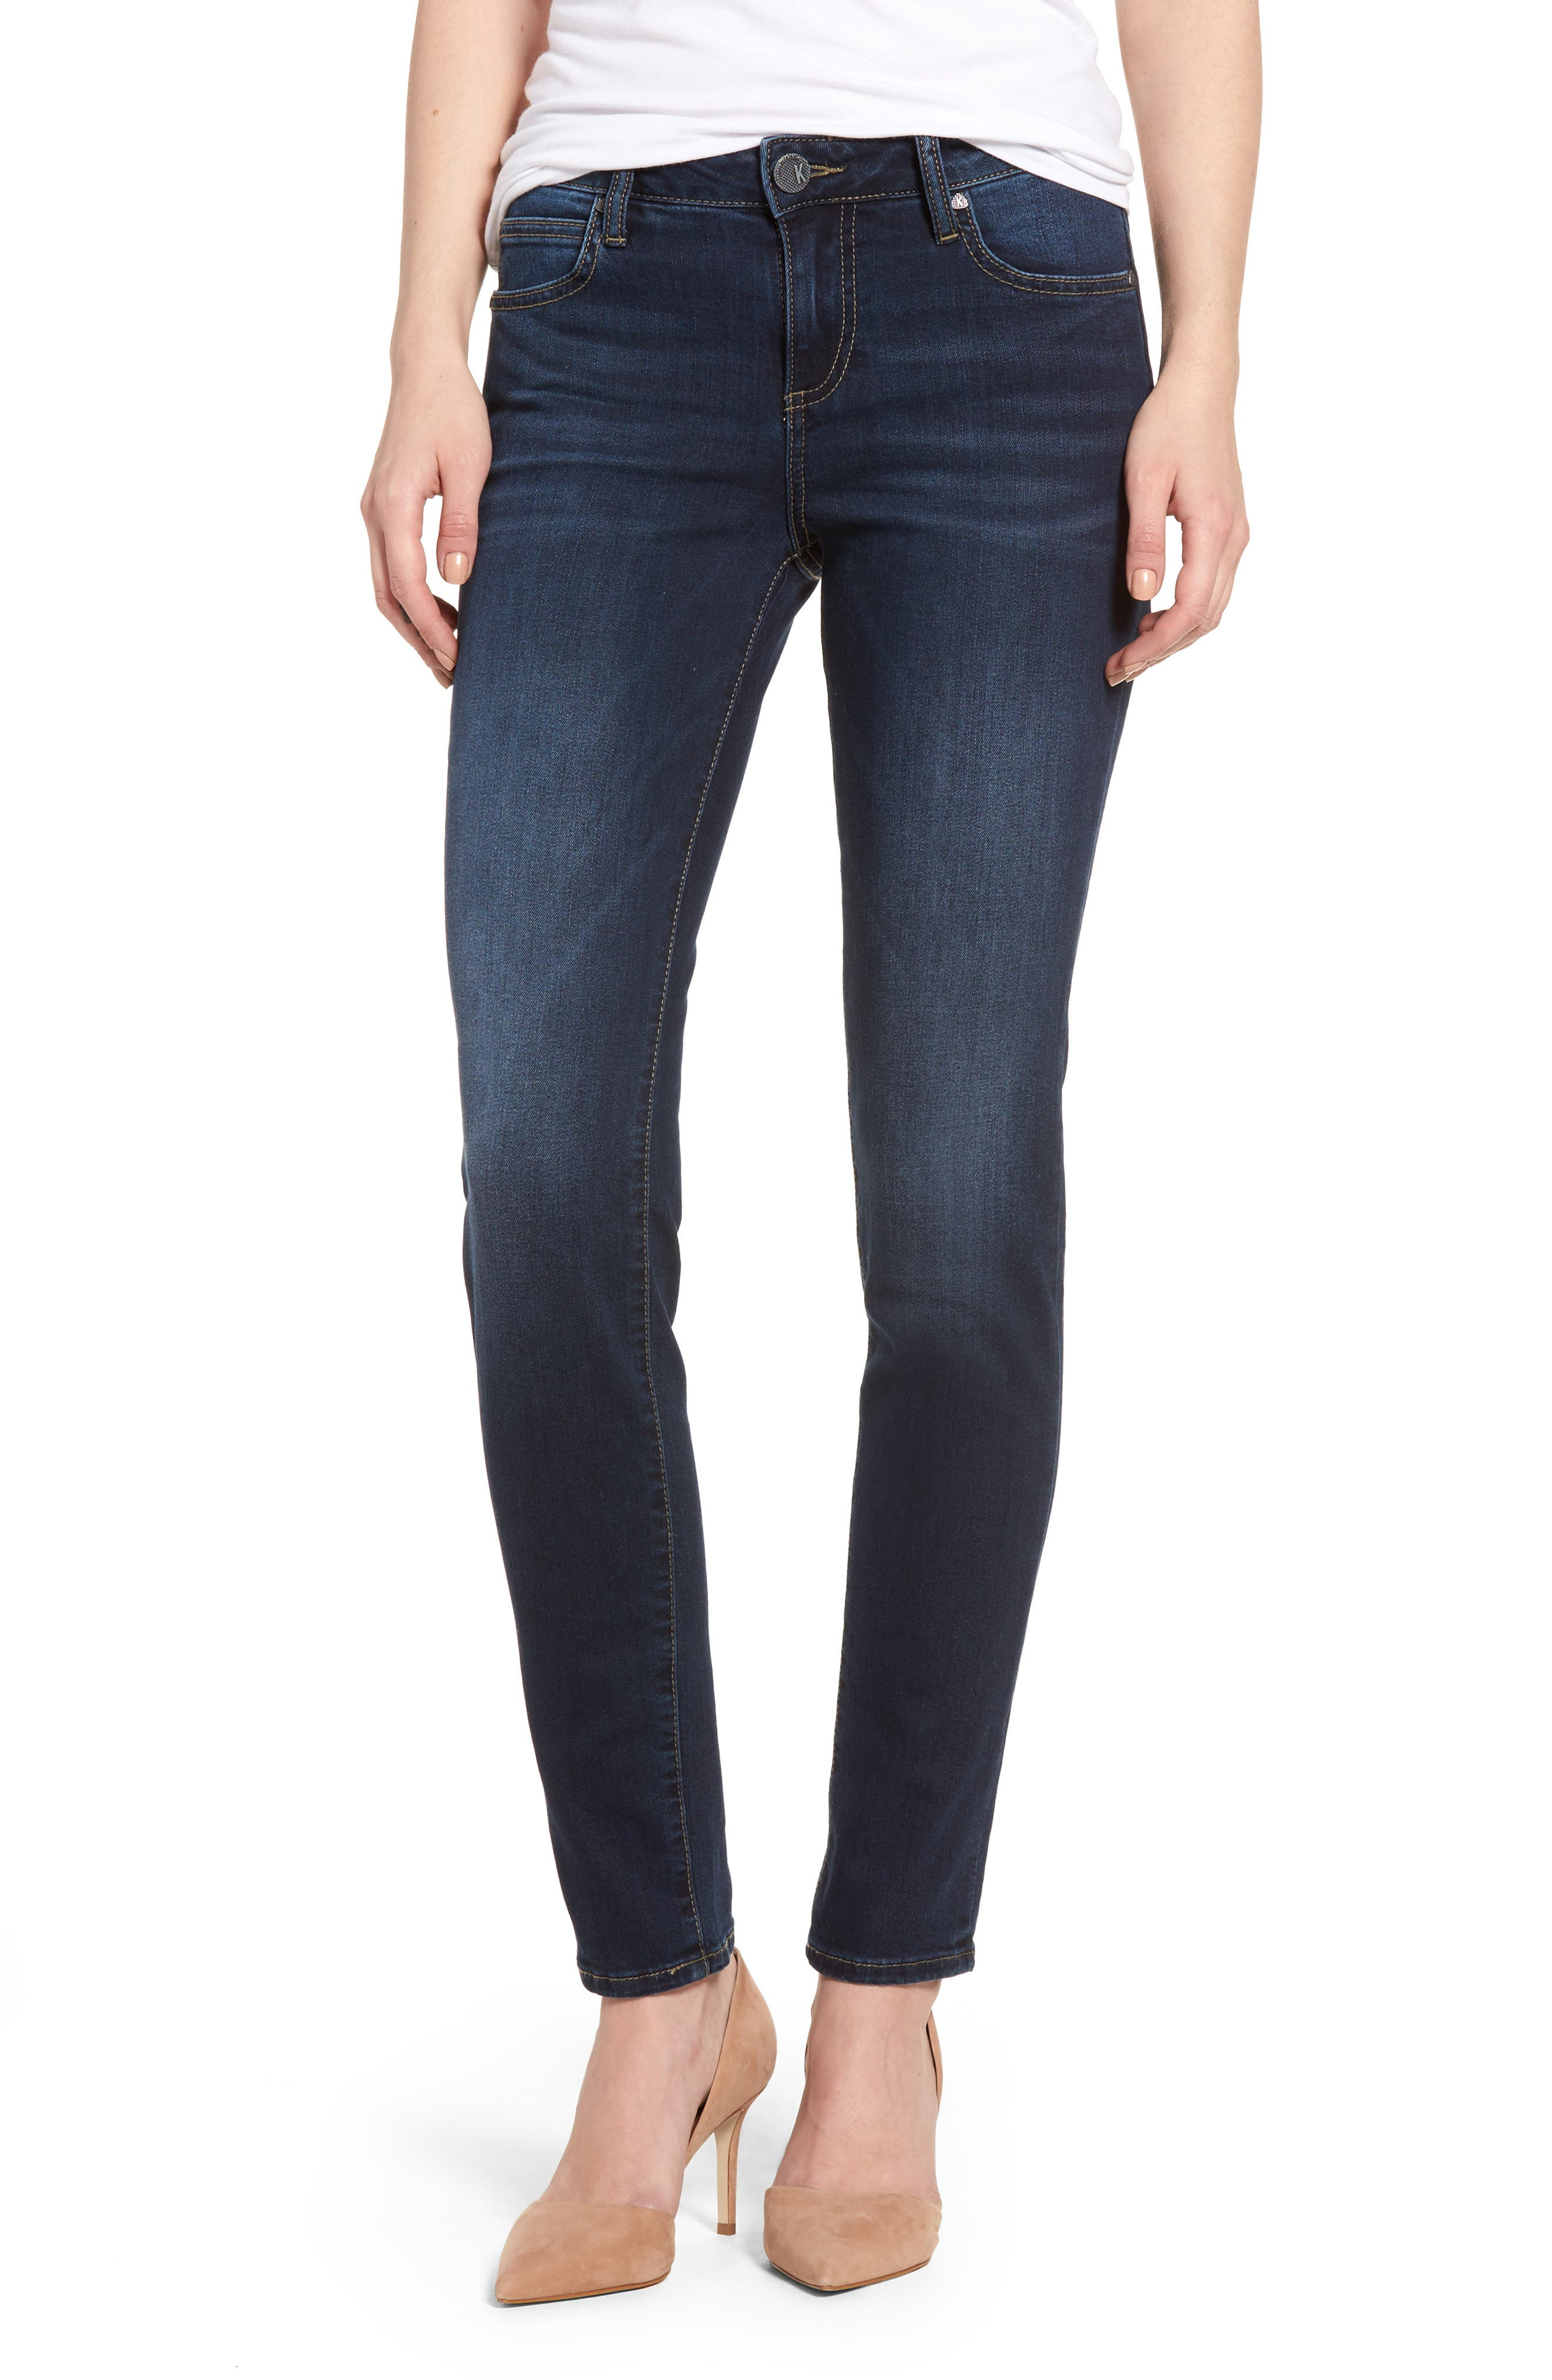 Image of KUT from the Kloth Diana Curvy Fit Skinny Jeans